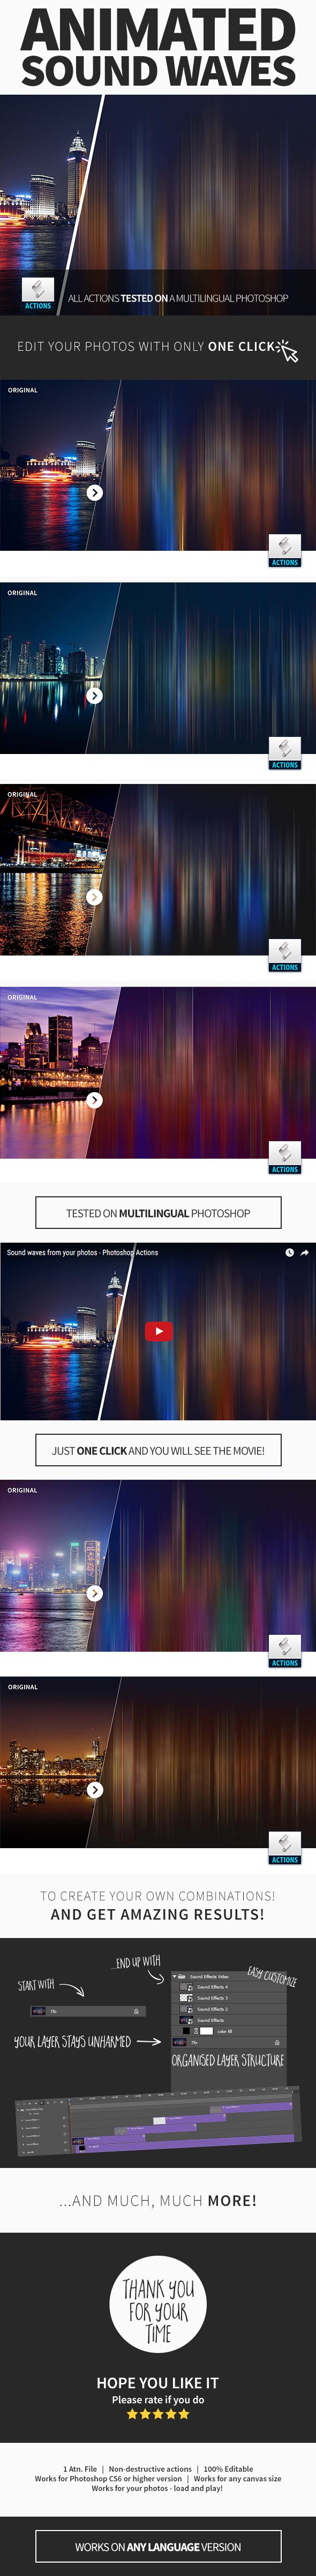 Animated Sound Waves Photoshop Action - #Photo Effects #Actions Download here: https://graphicriver.net/item/animated-sound-waves-photoshop-action/19743935?ref=alena994